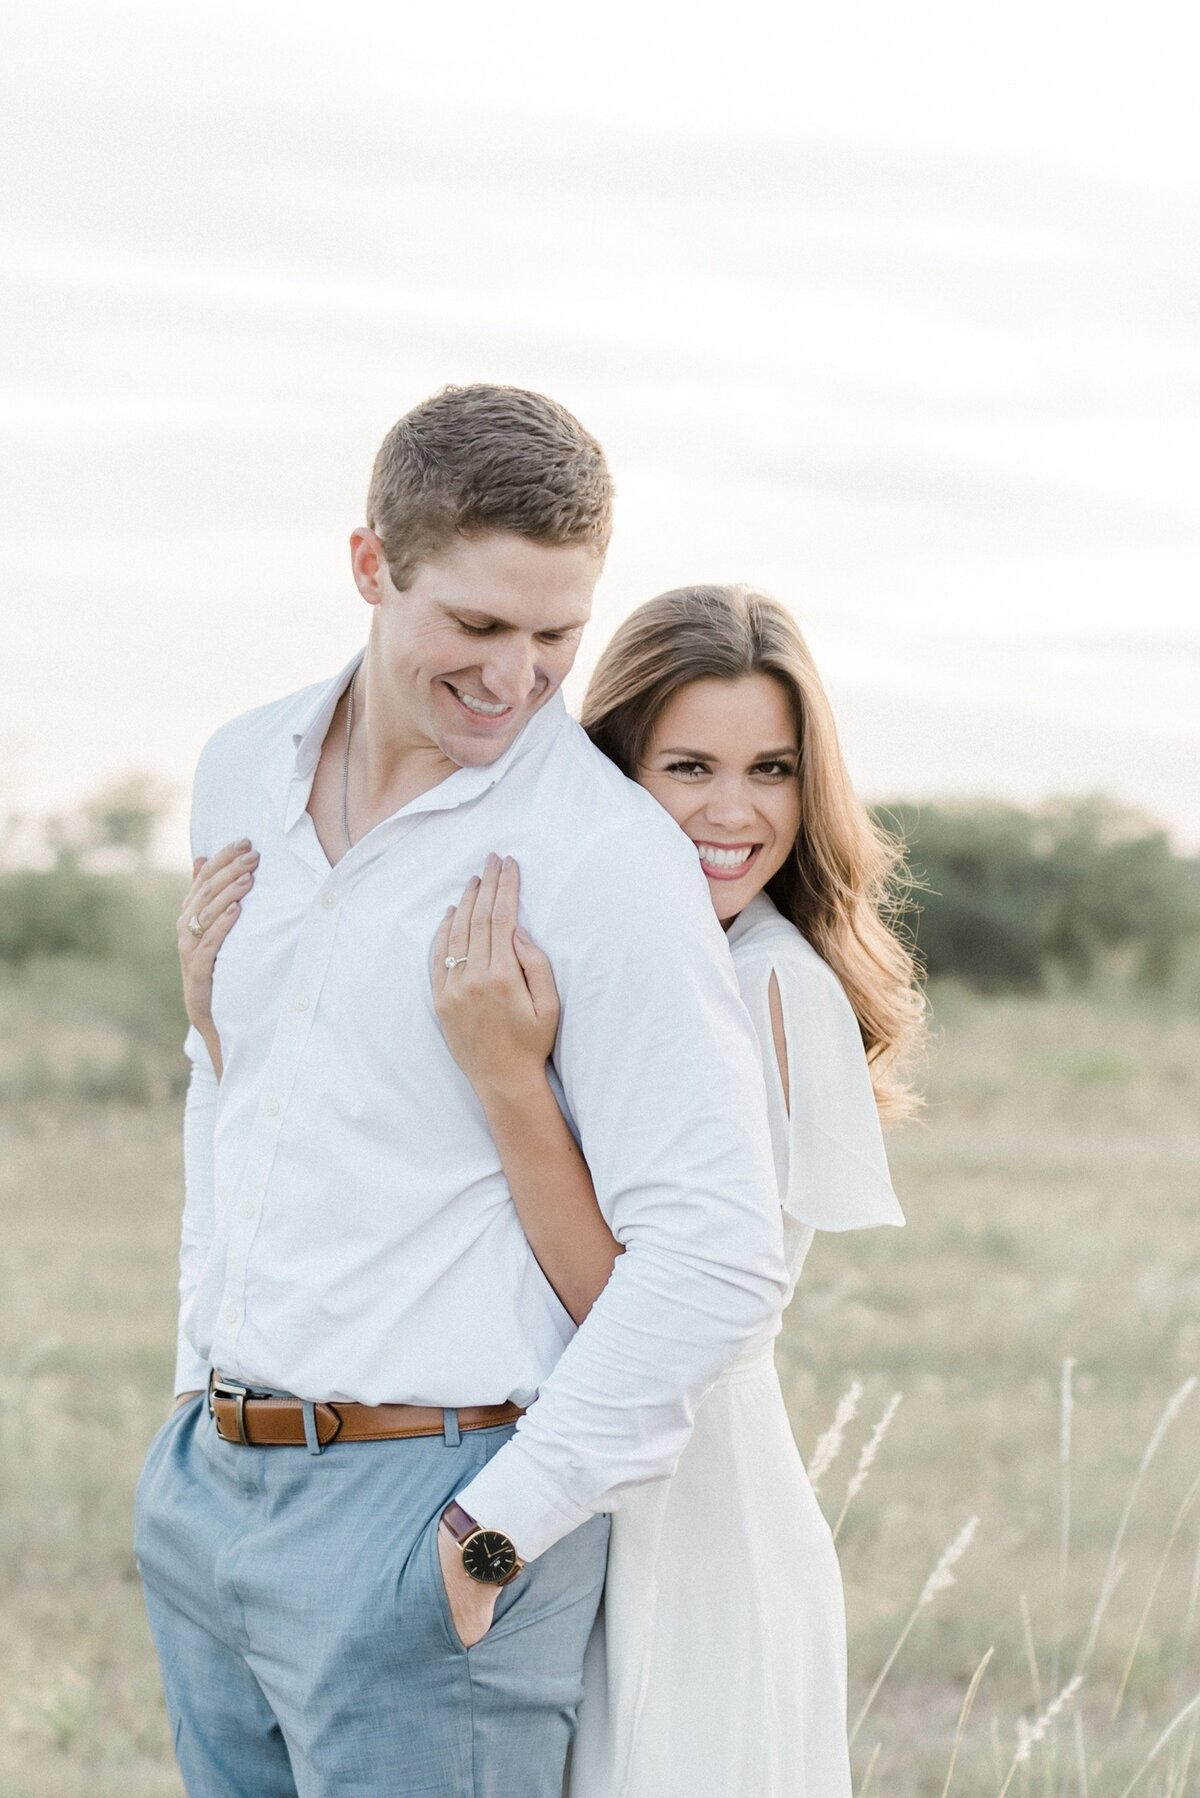 Oudoor Texas Engagement Session | Patti Darby Photography 21